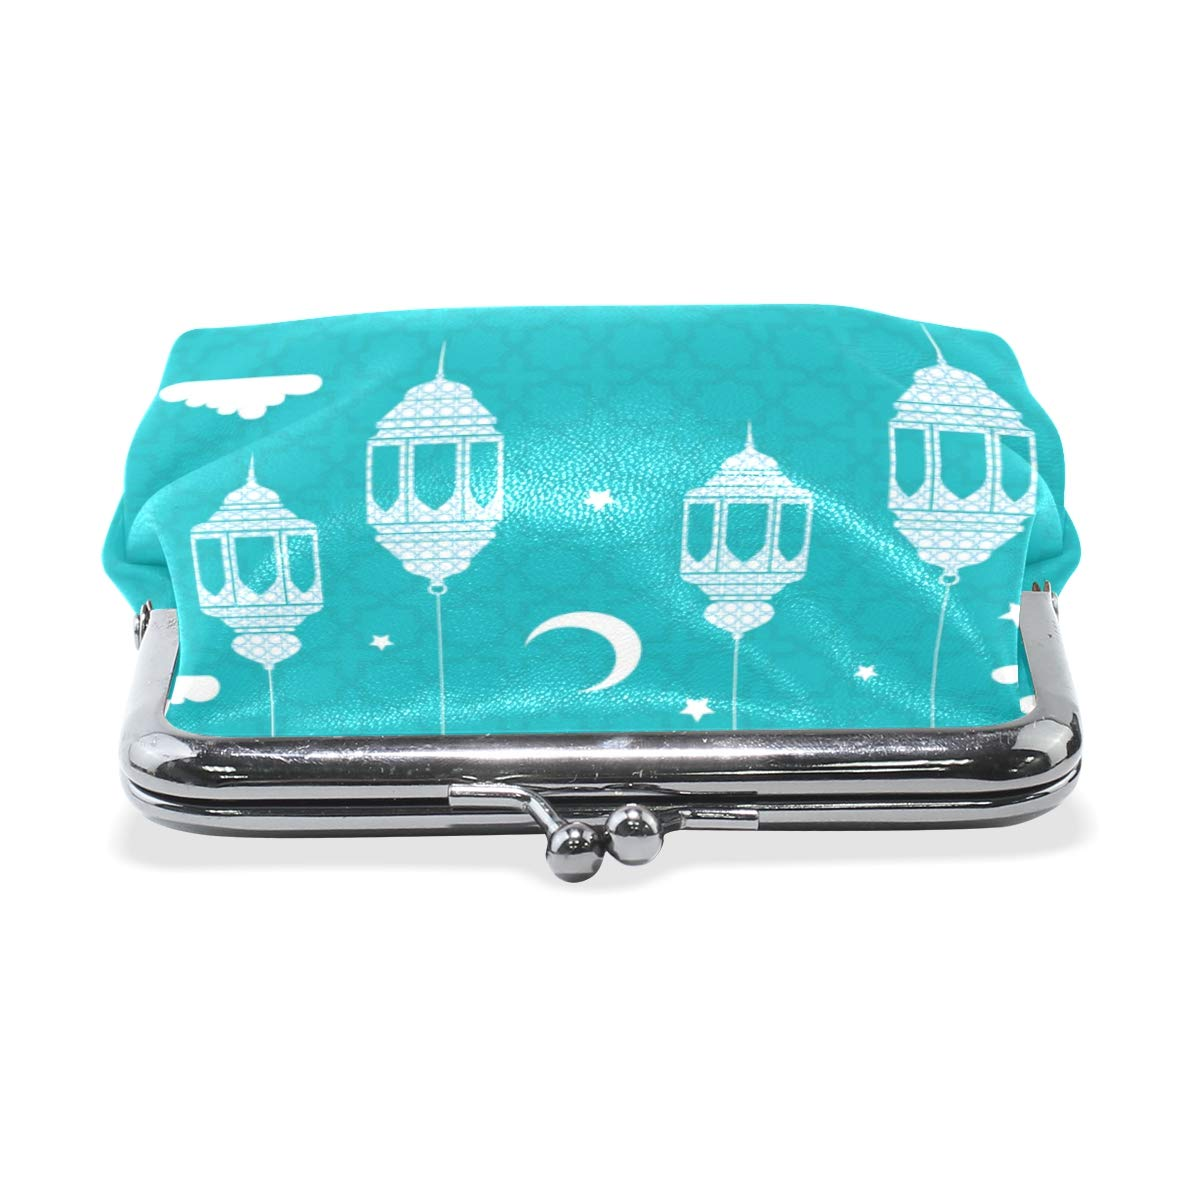 TIKISMILE Flat Lamps Leather Fashion Buckle Cute Coin Purse Bags Clutch Pouch Wallet